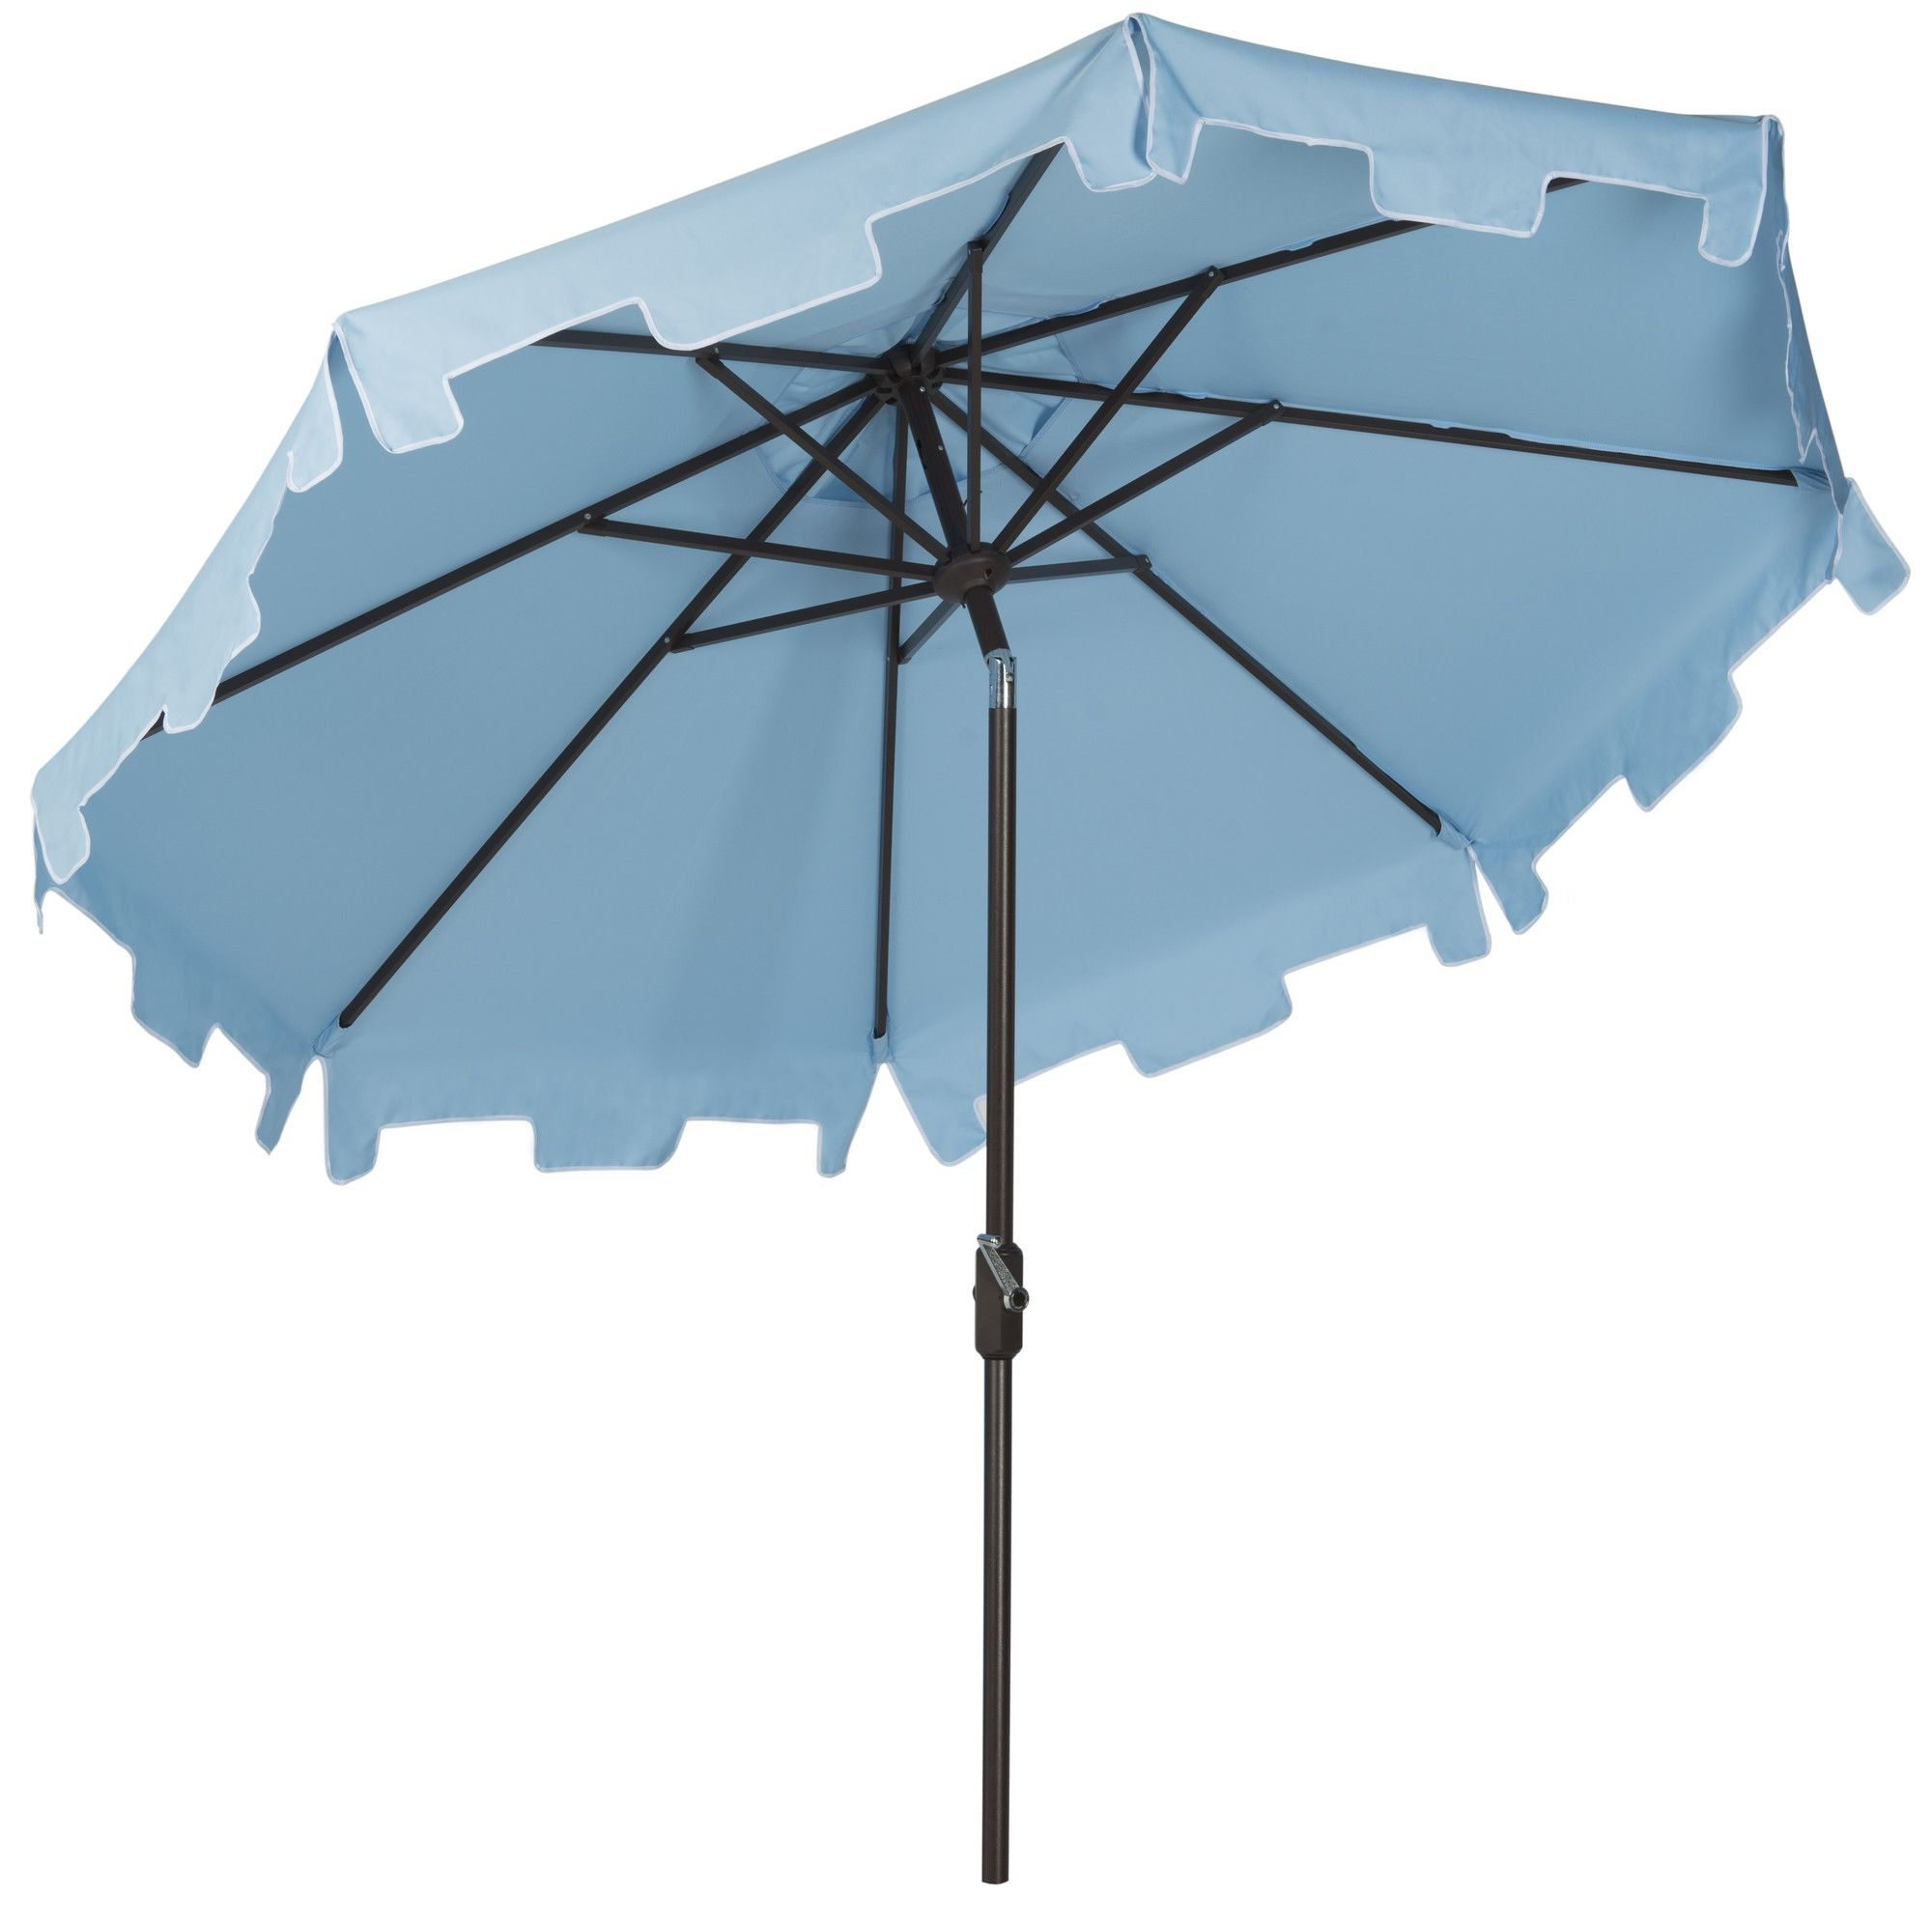 Shop Wayfair For All Patio Umbrellas To Match Every Style And Budget Throughout Newest Wayfair Patio Umbrellas (View 11 of 20)